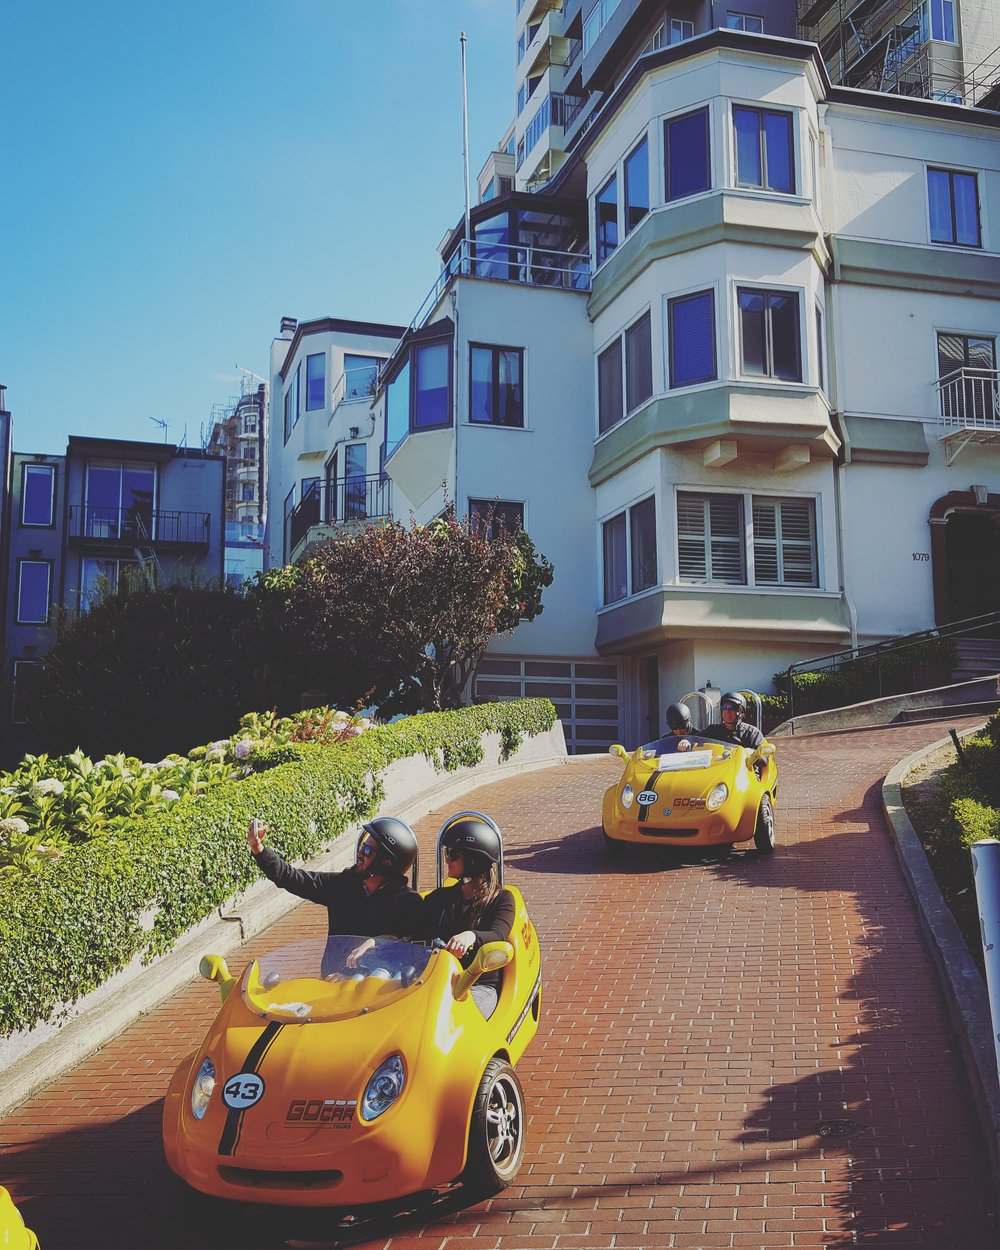 San Francisco, USA - Making the most of a work trip!